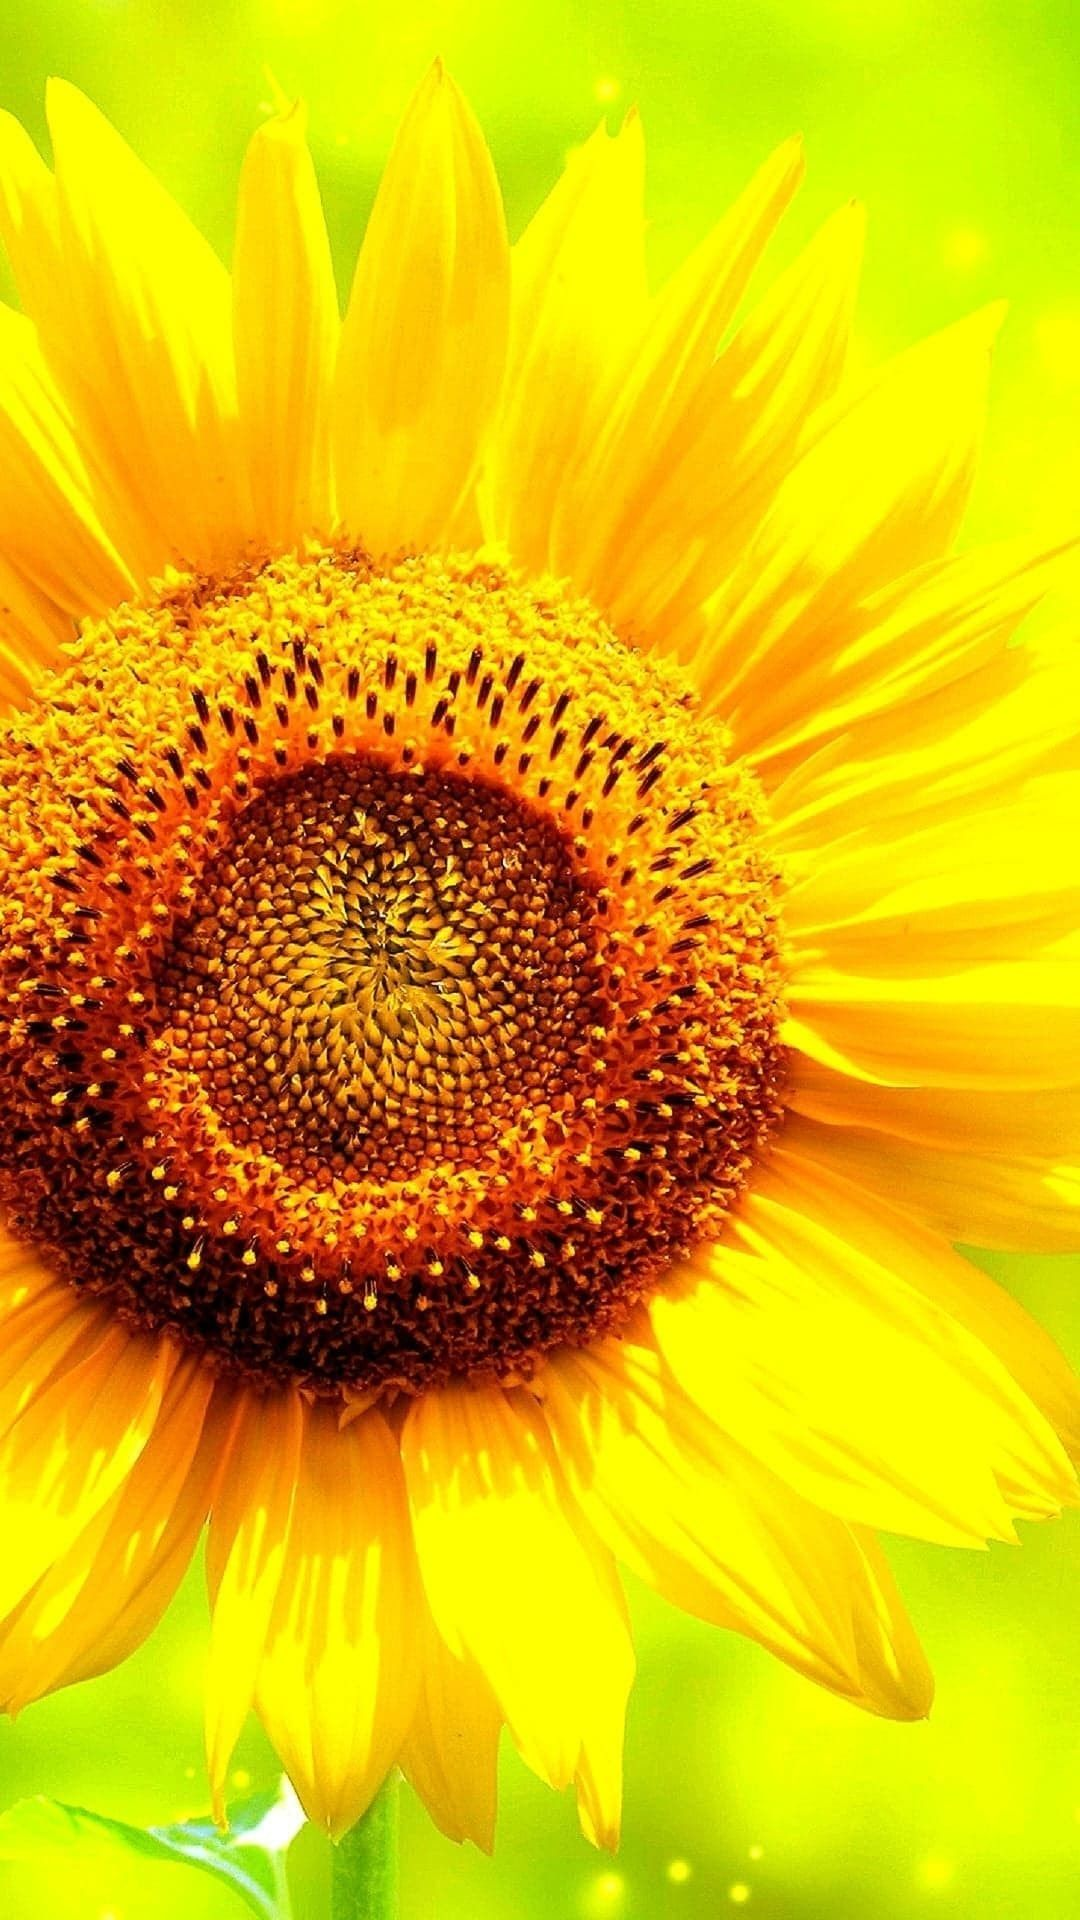 Sunflower Hd Wallpapers For Mobile Phone Sunflower Hd Wallpapers For Mobile Phon In 2020 Wallpapers For Mobile Phones Mobile Wallpaper Hd Wallpapers For Mobile